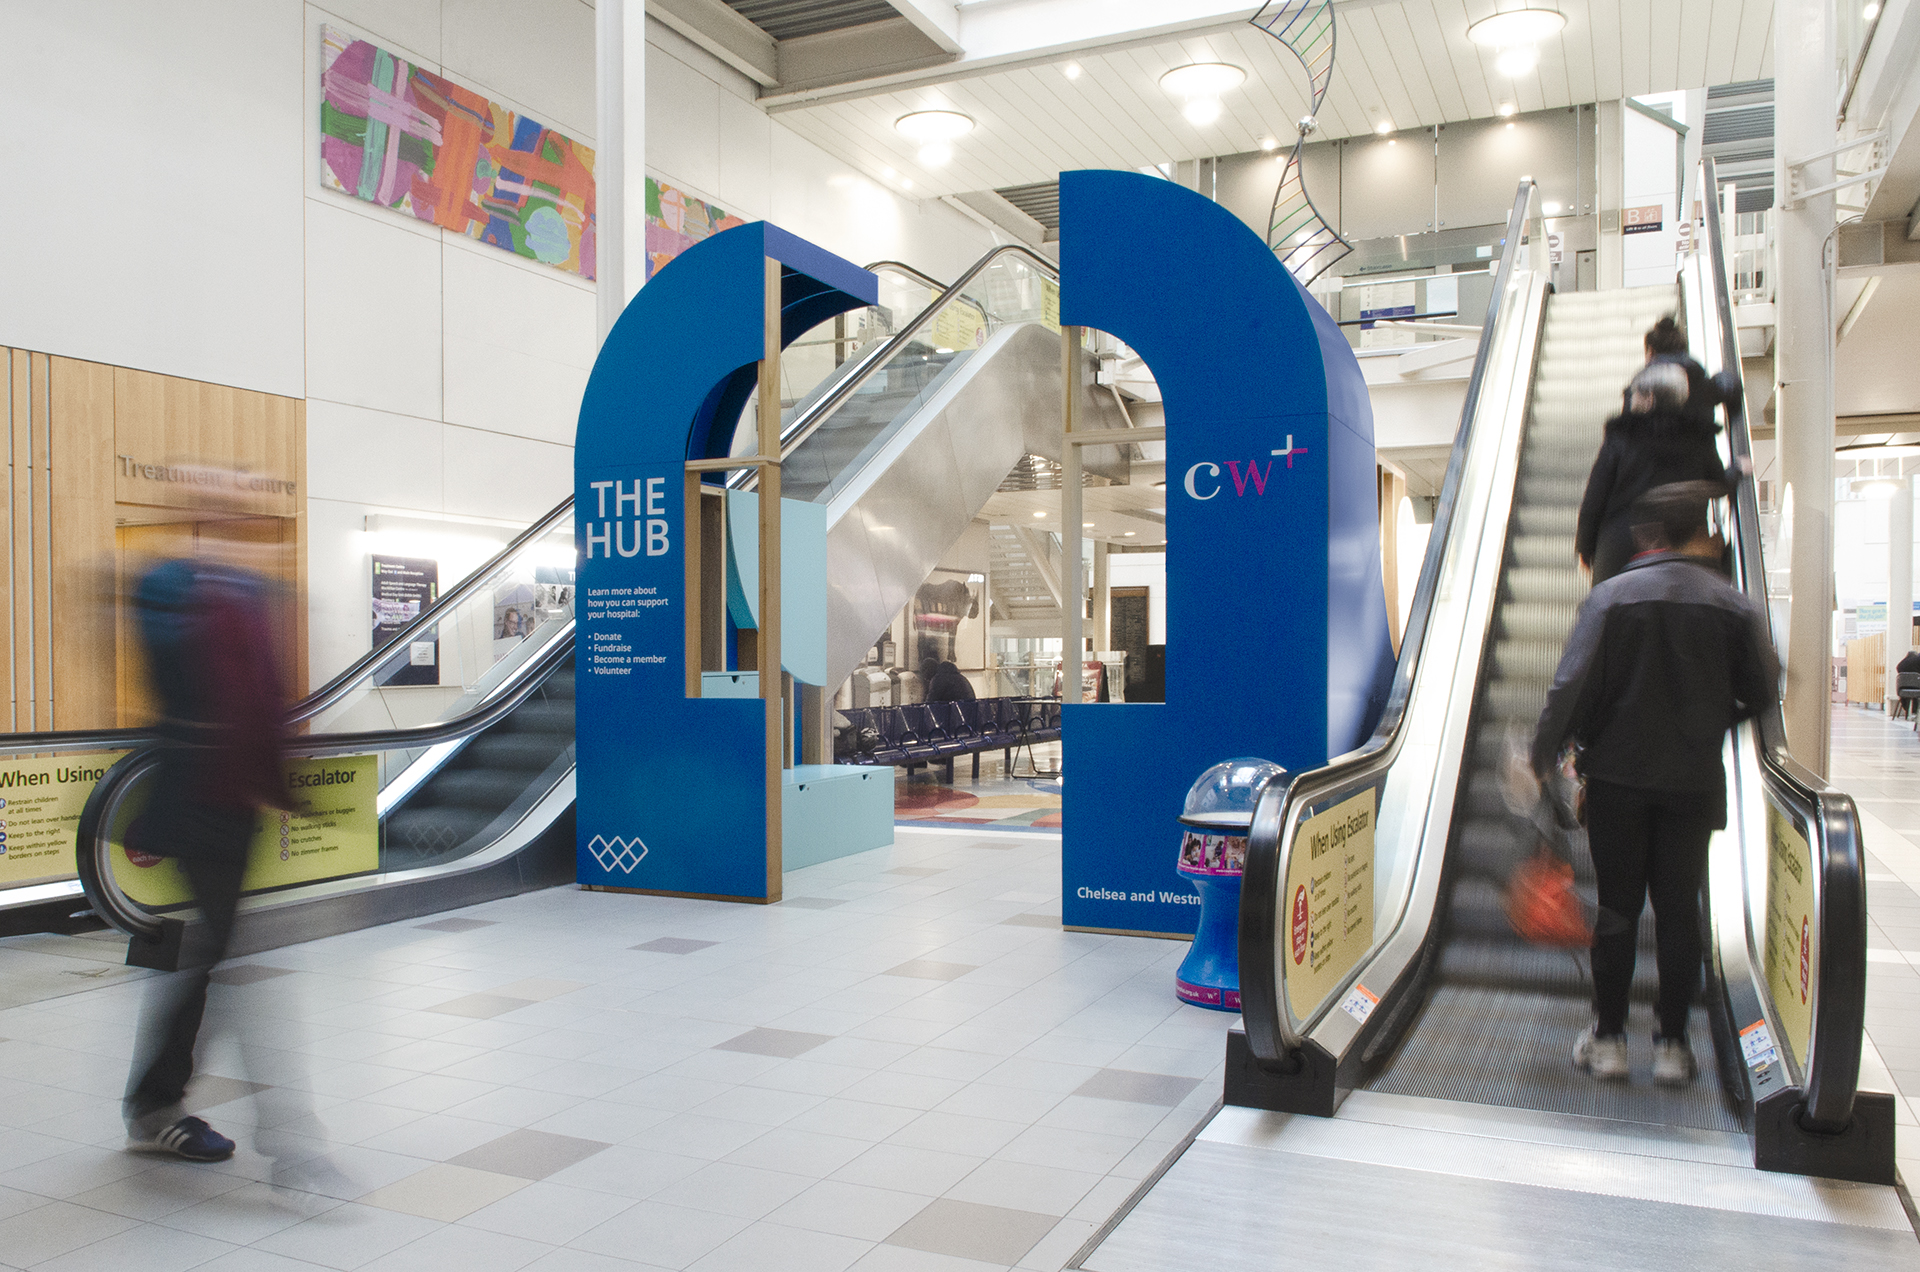 The Community Hub, located in the central atrium, acts as activity venue and permanent signpost for the hospital's charity.